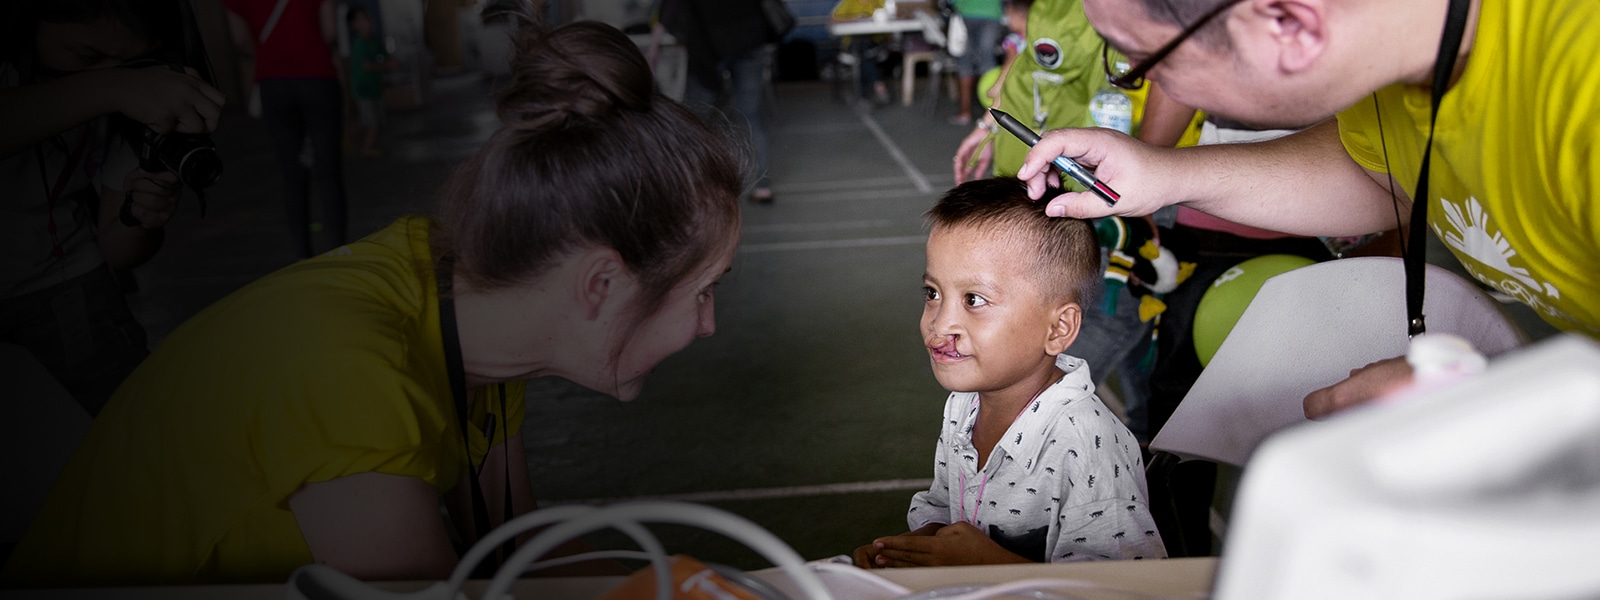 A woman talks to a young boy who has a disfigured lip.